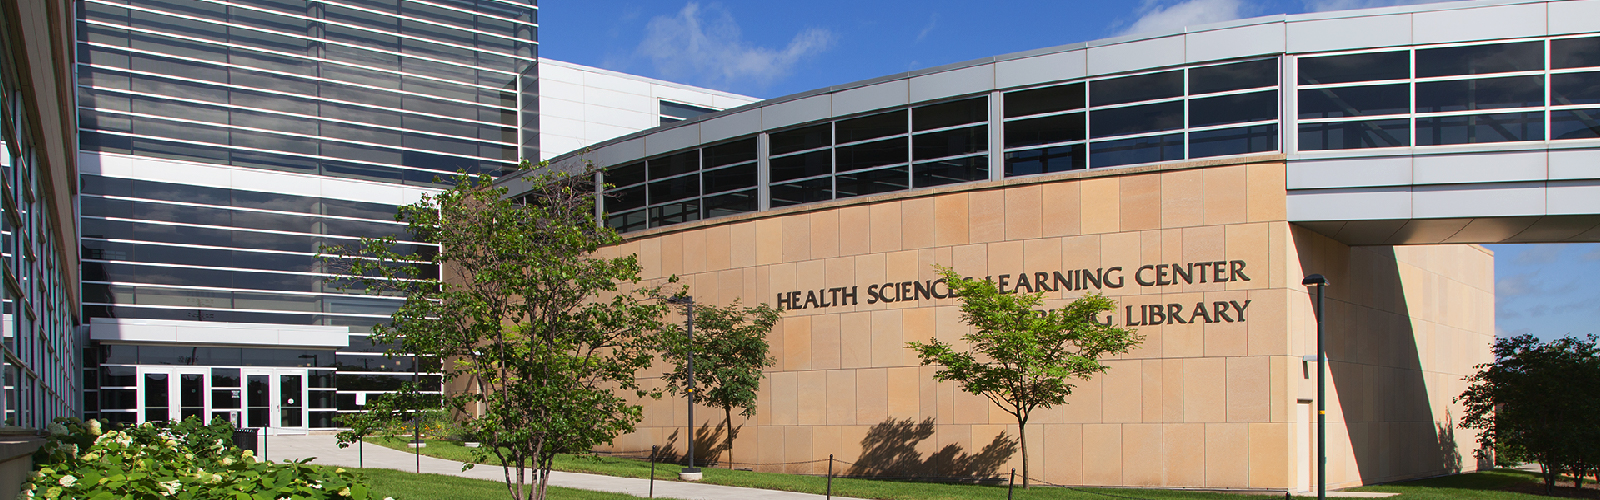 HSLC, Health Sciences Learning Center, UW-Madison, SMPH, School of Medicine and Public Health